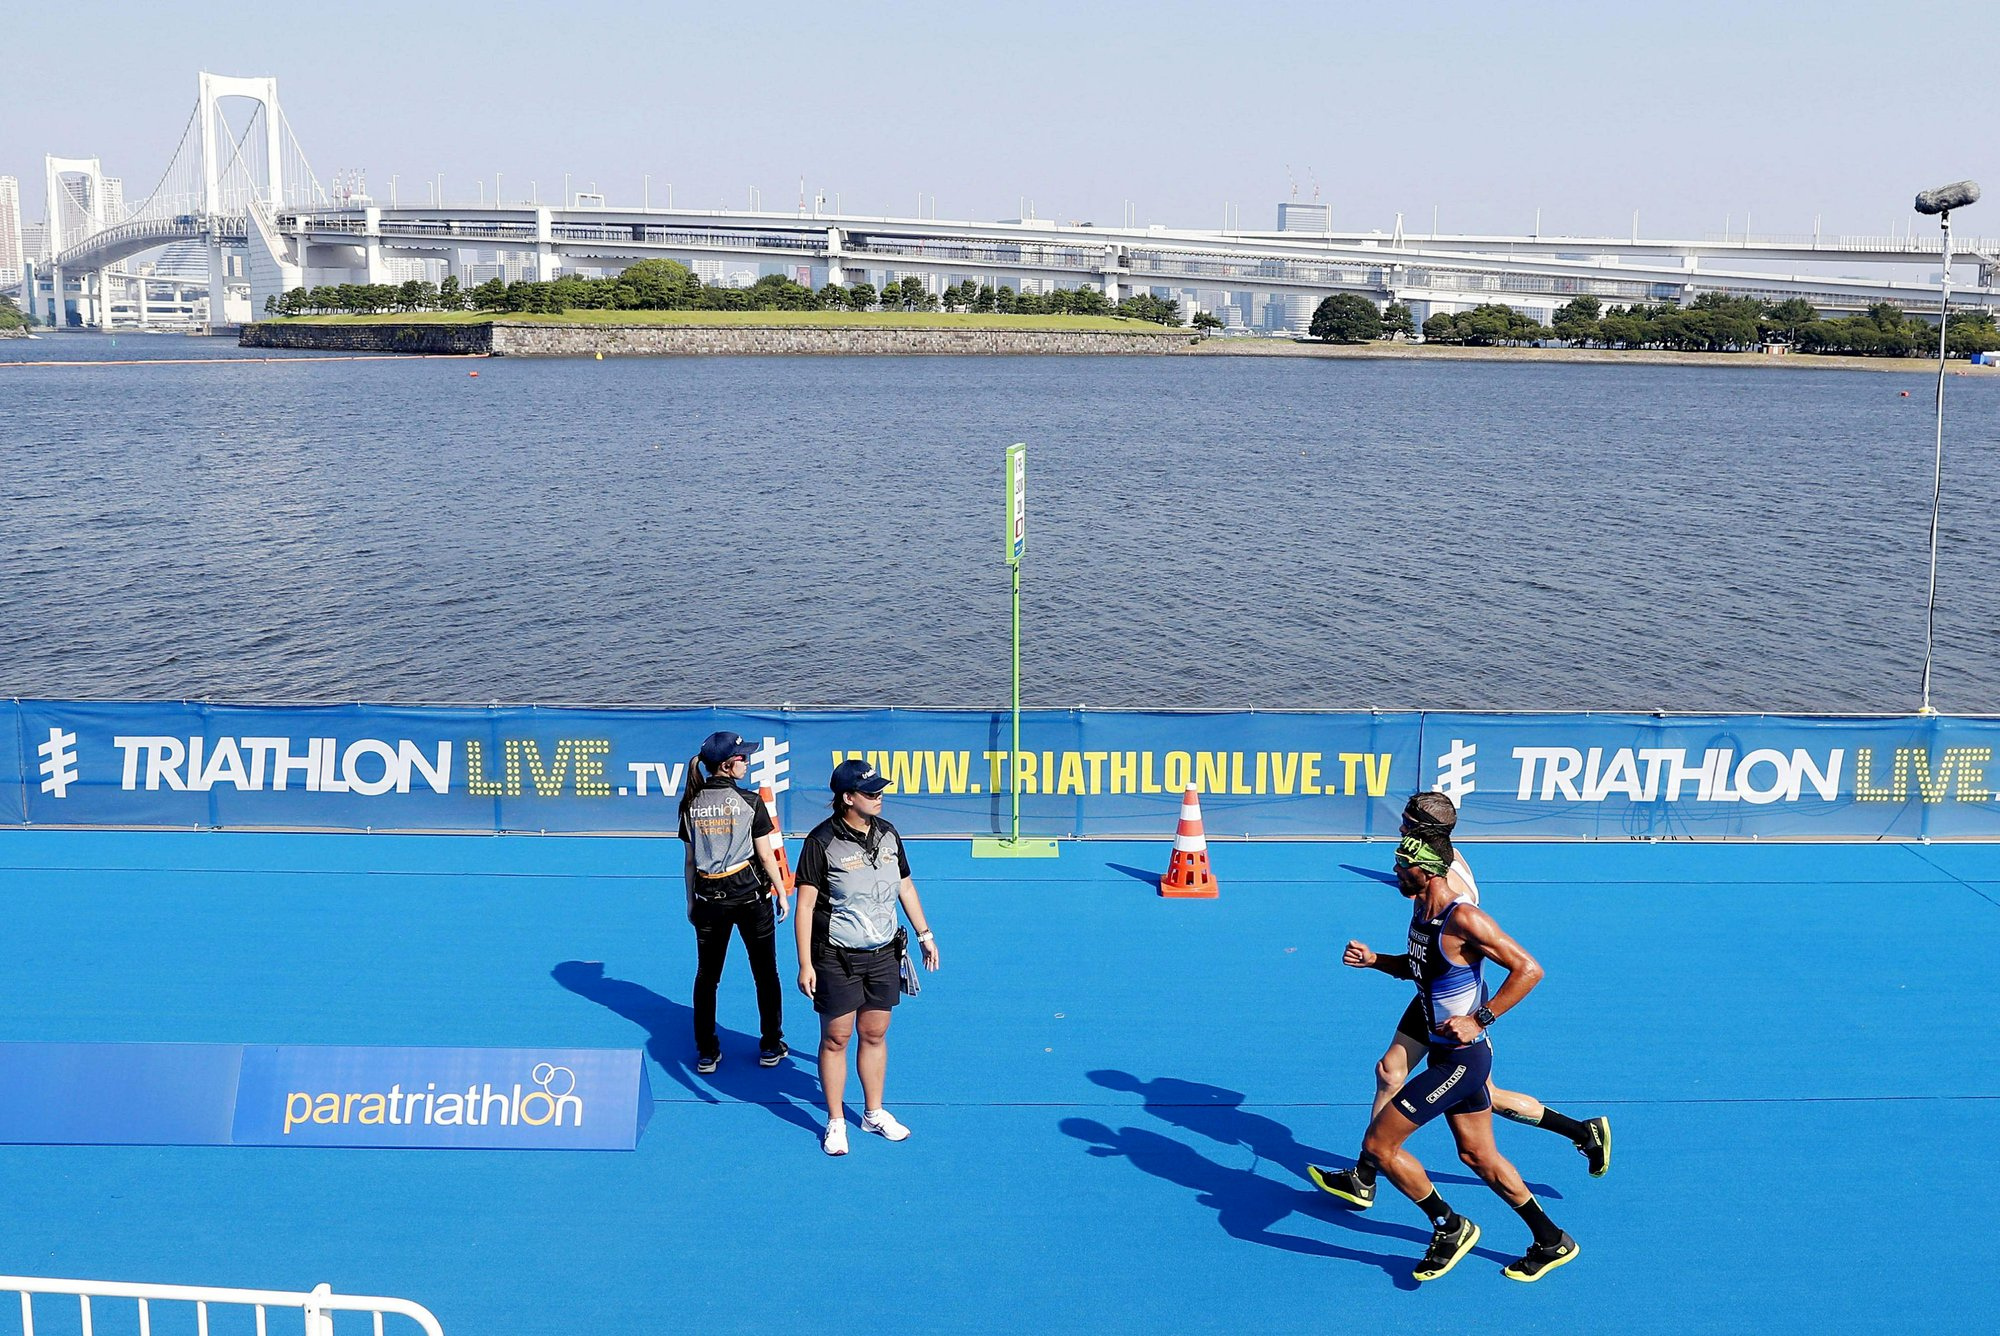 High bacteria level cancels water portion of Tokyo triathlon